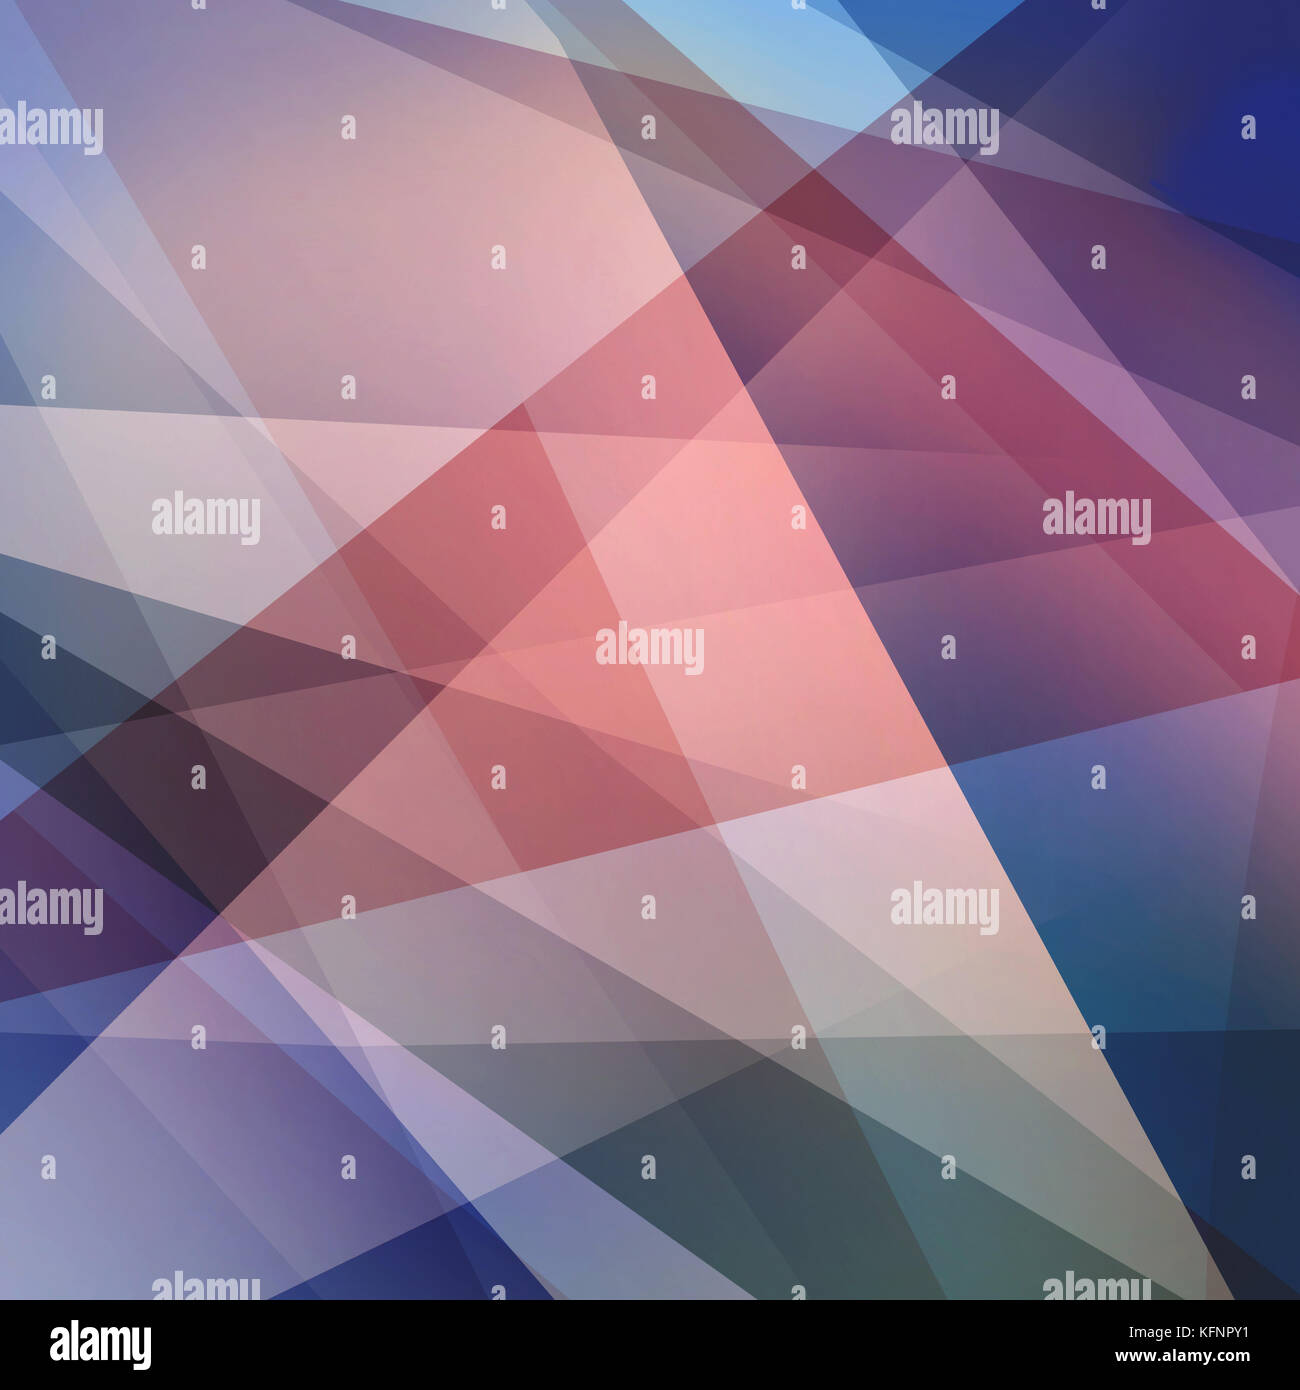 abstract colorful geometric background  triangles and angled shapes     abstract colorful geometric background  triangles and angled shapes layered  line in transparent design  glass shards  window light reflections